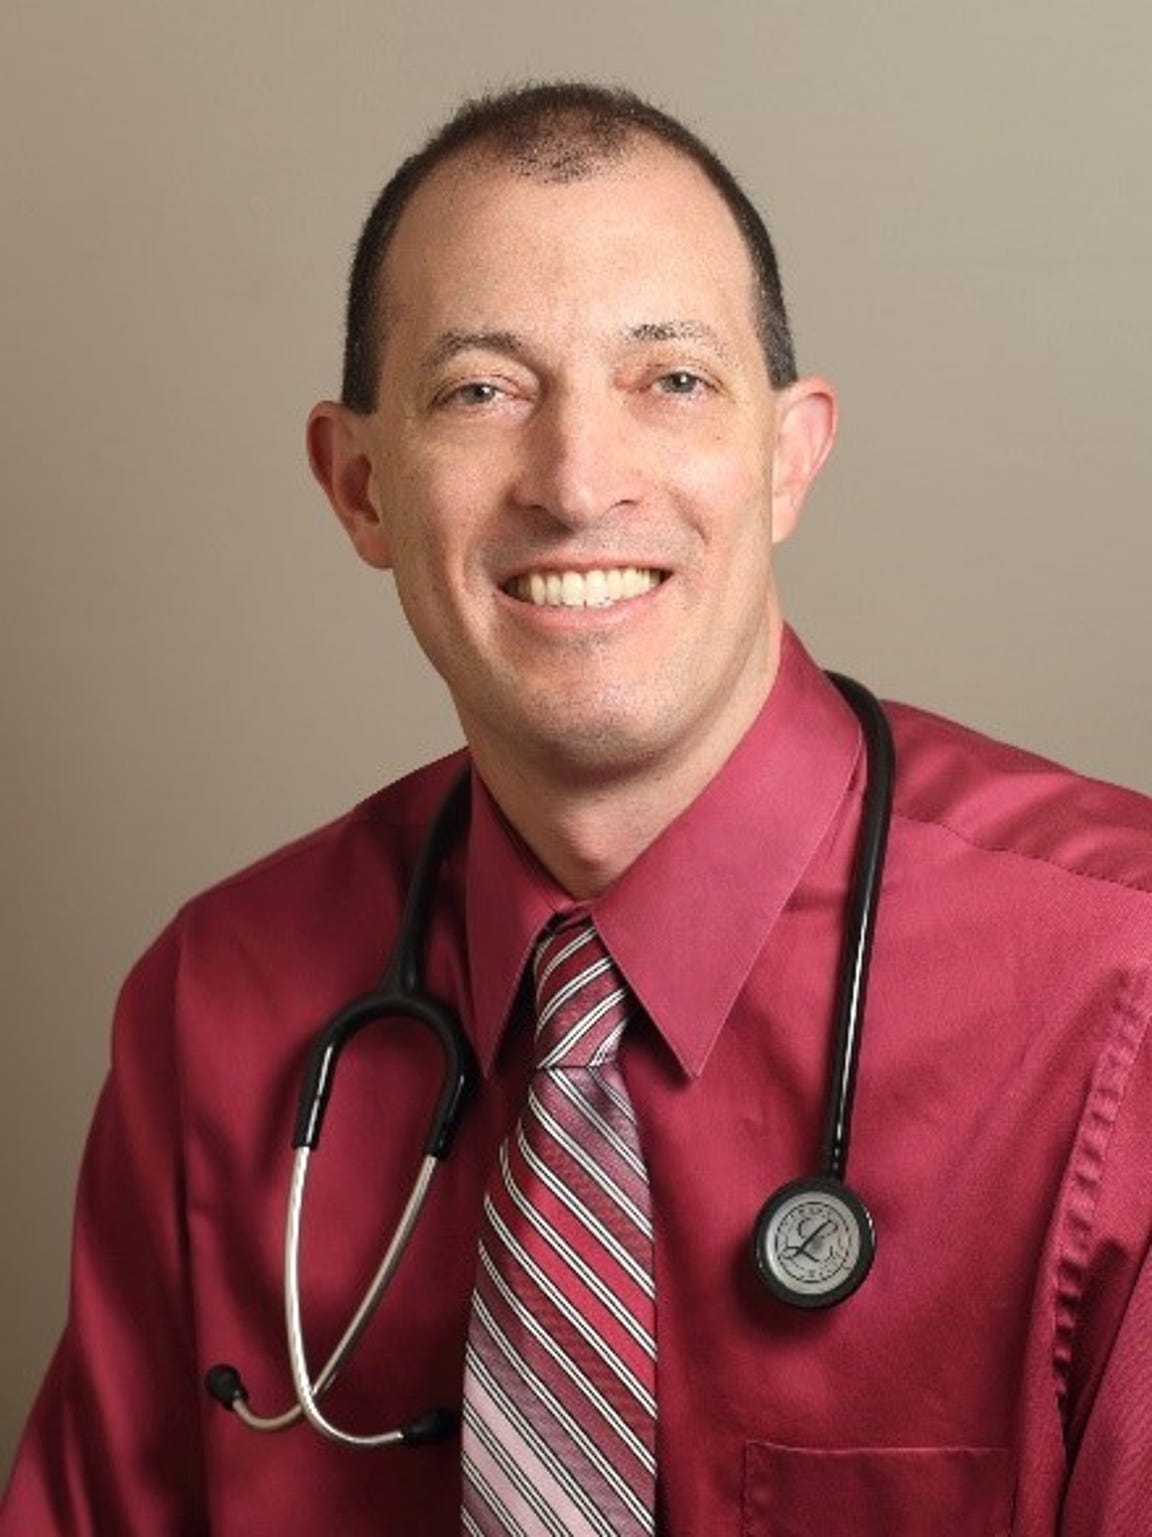 Dr. Robert Pedowitz is board-certified in family medicine